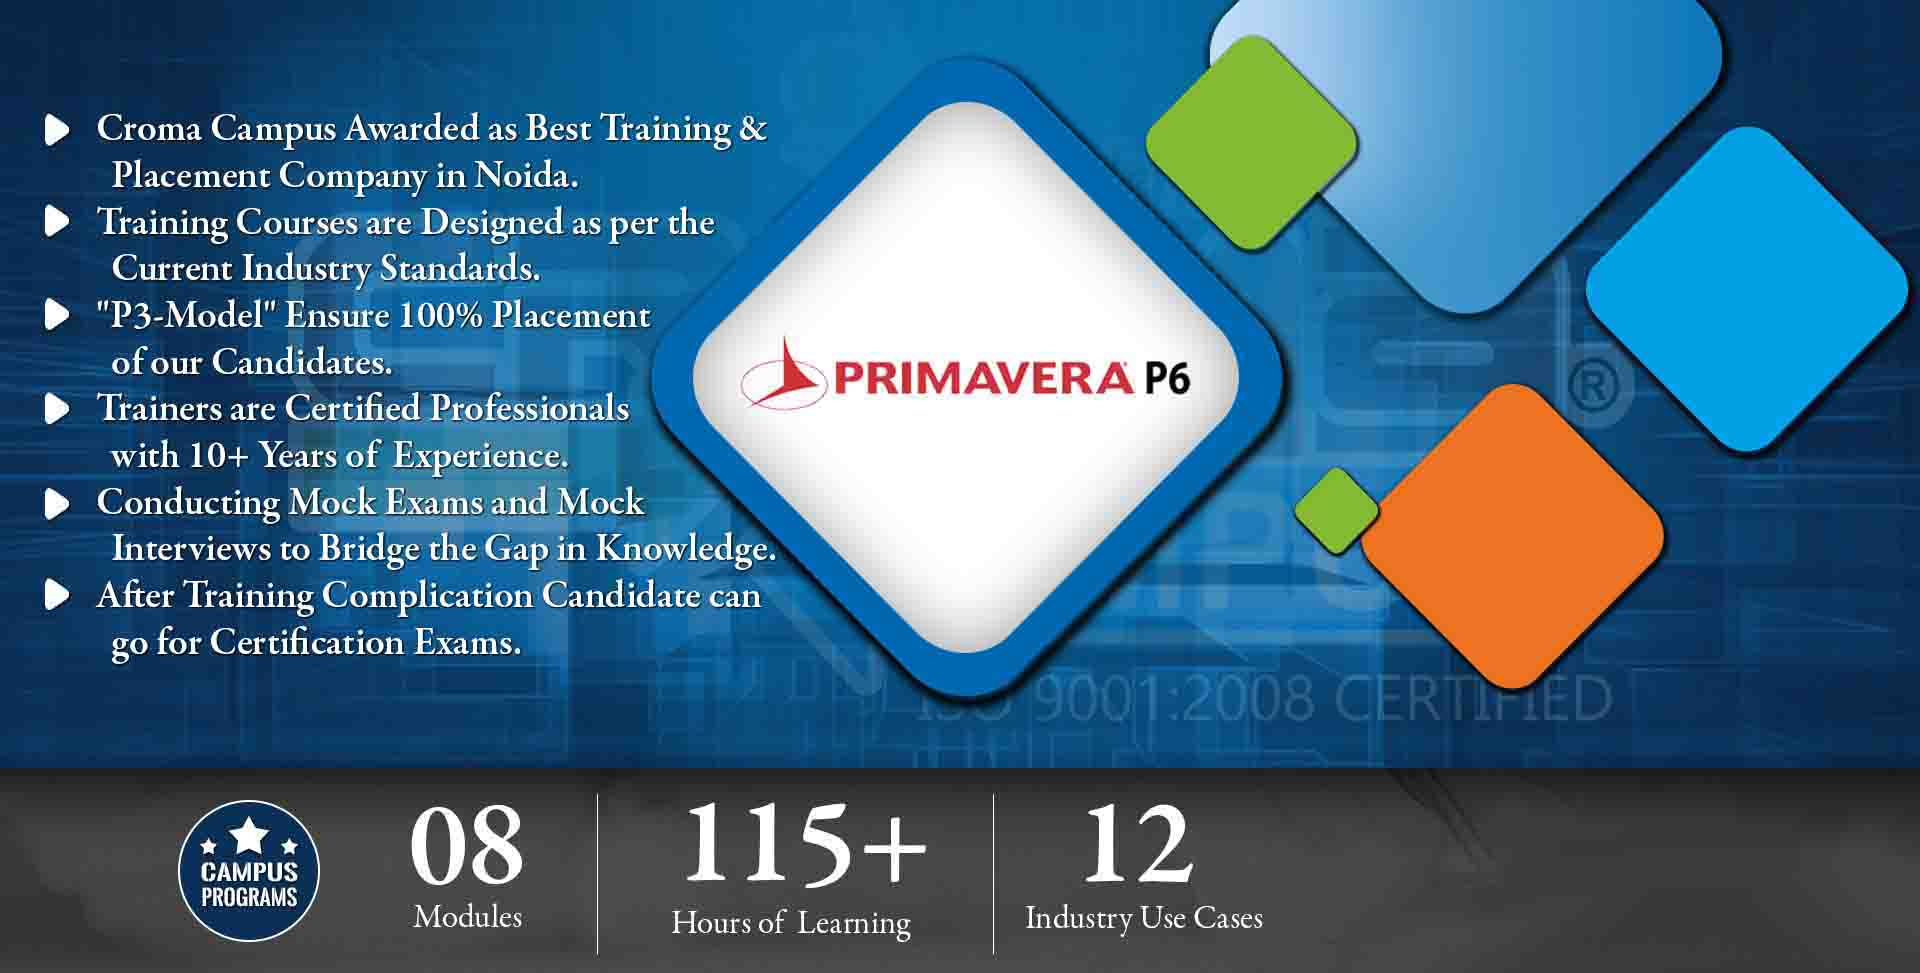 Primavera P6 Training in Noida- Croma Campus